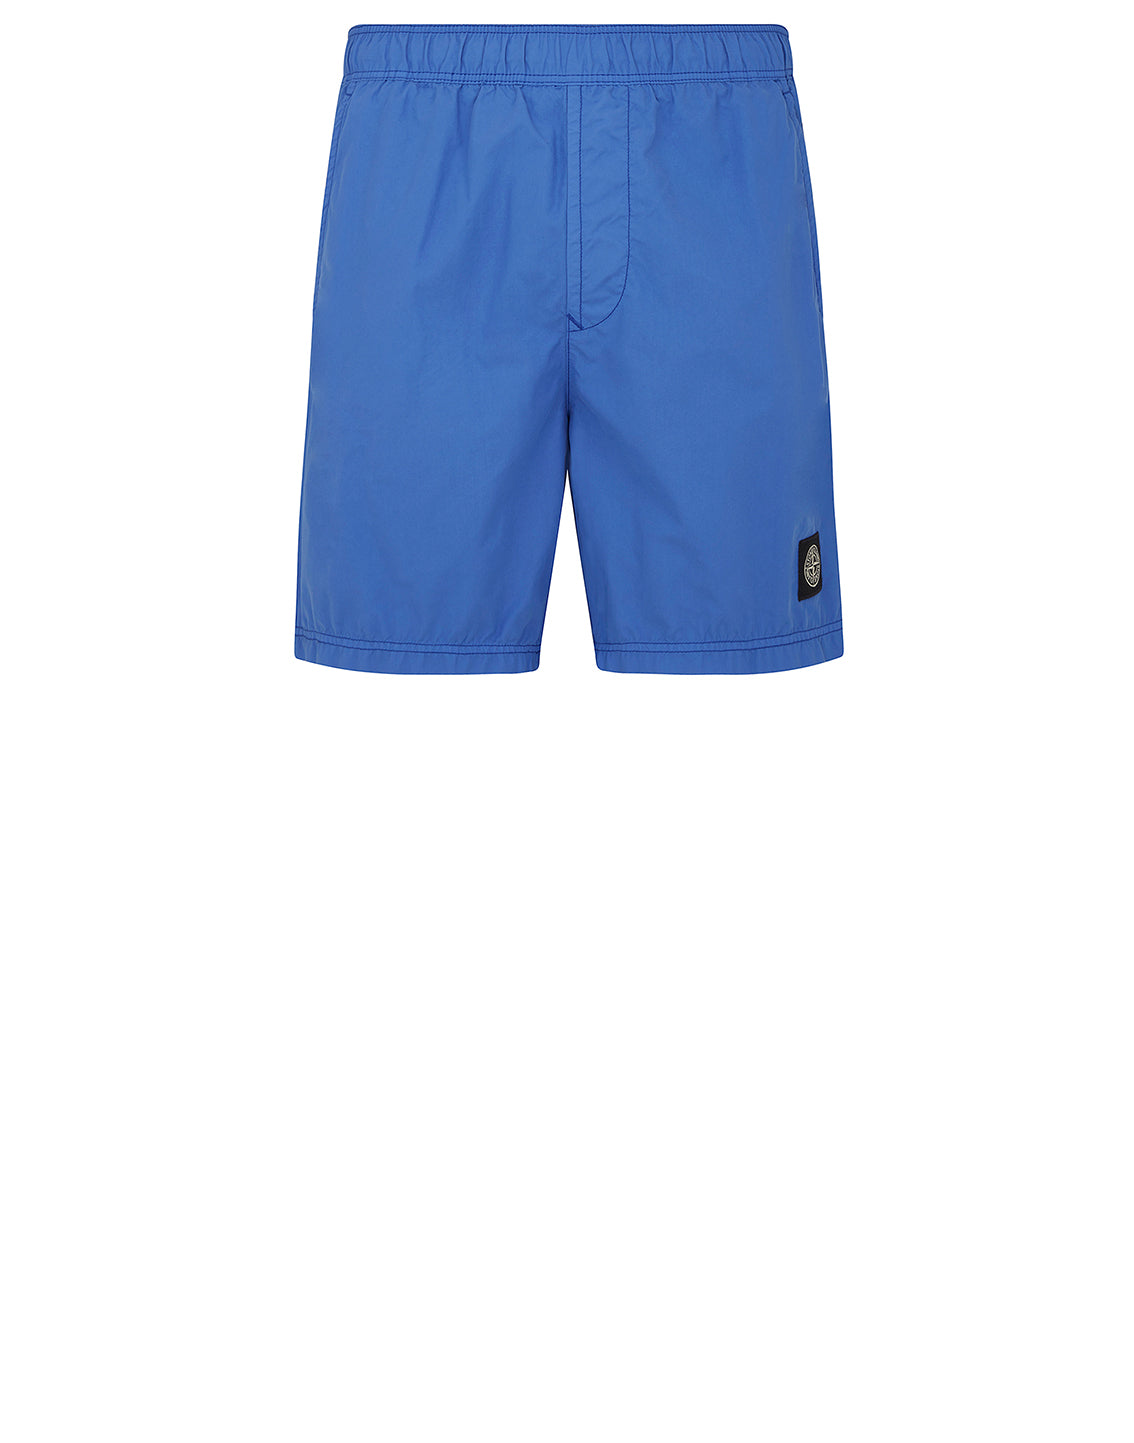 B0946 Swimming Shorts in Periwinkle